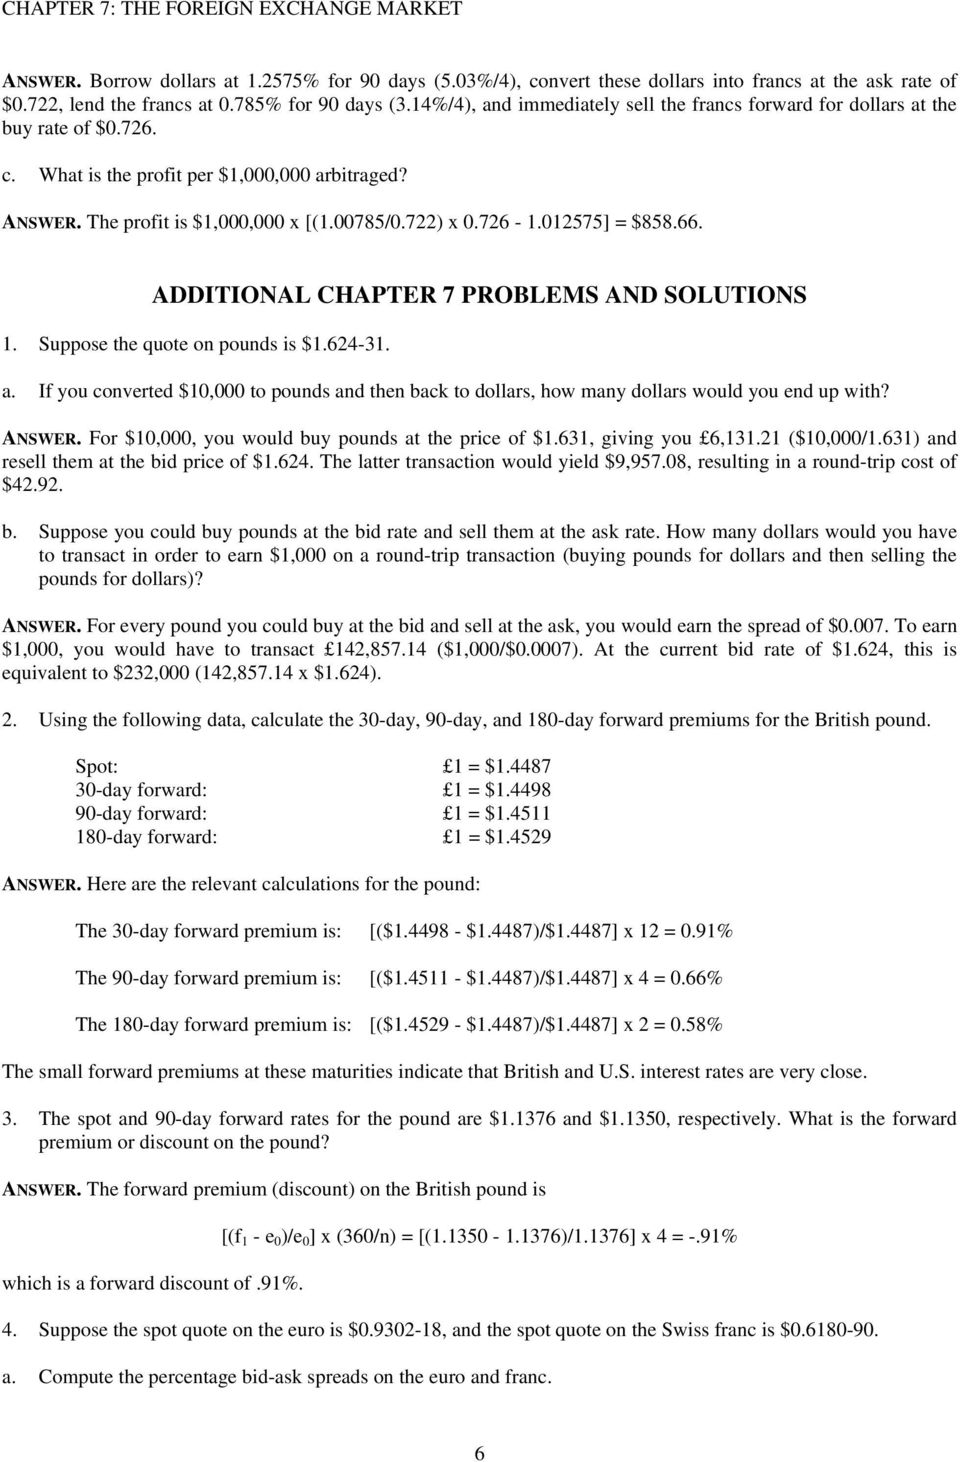 CHAPTER 7 SUGGESTED ANSWERS TO CHAPTER 7 QUESTIONS - PDF Free Download